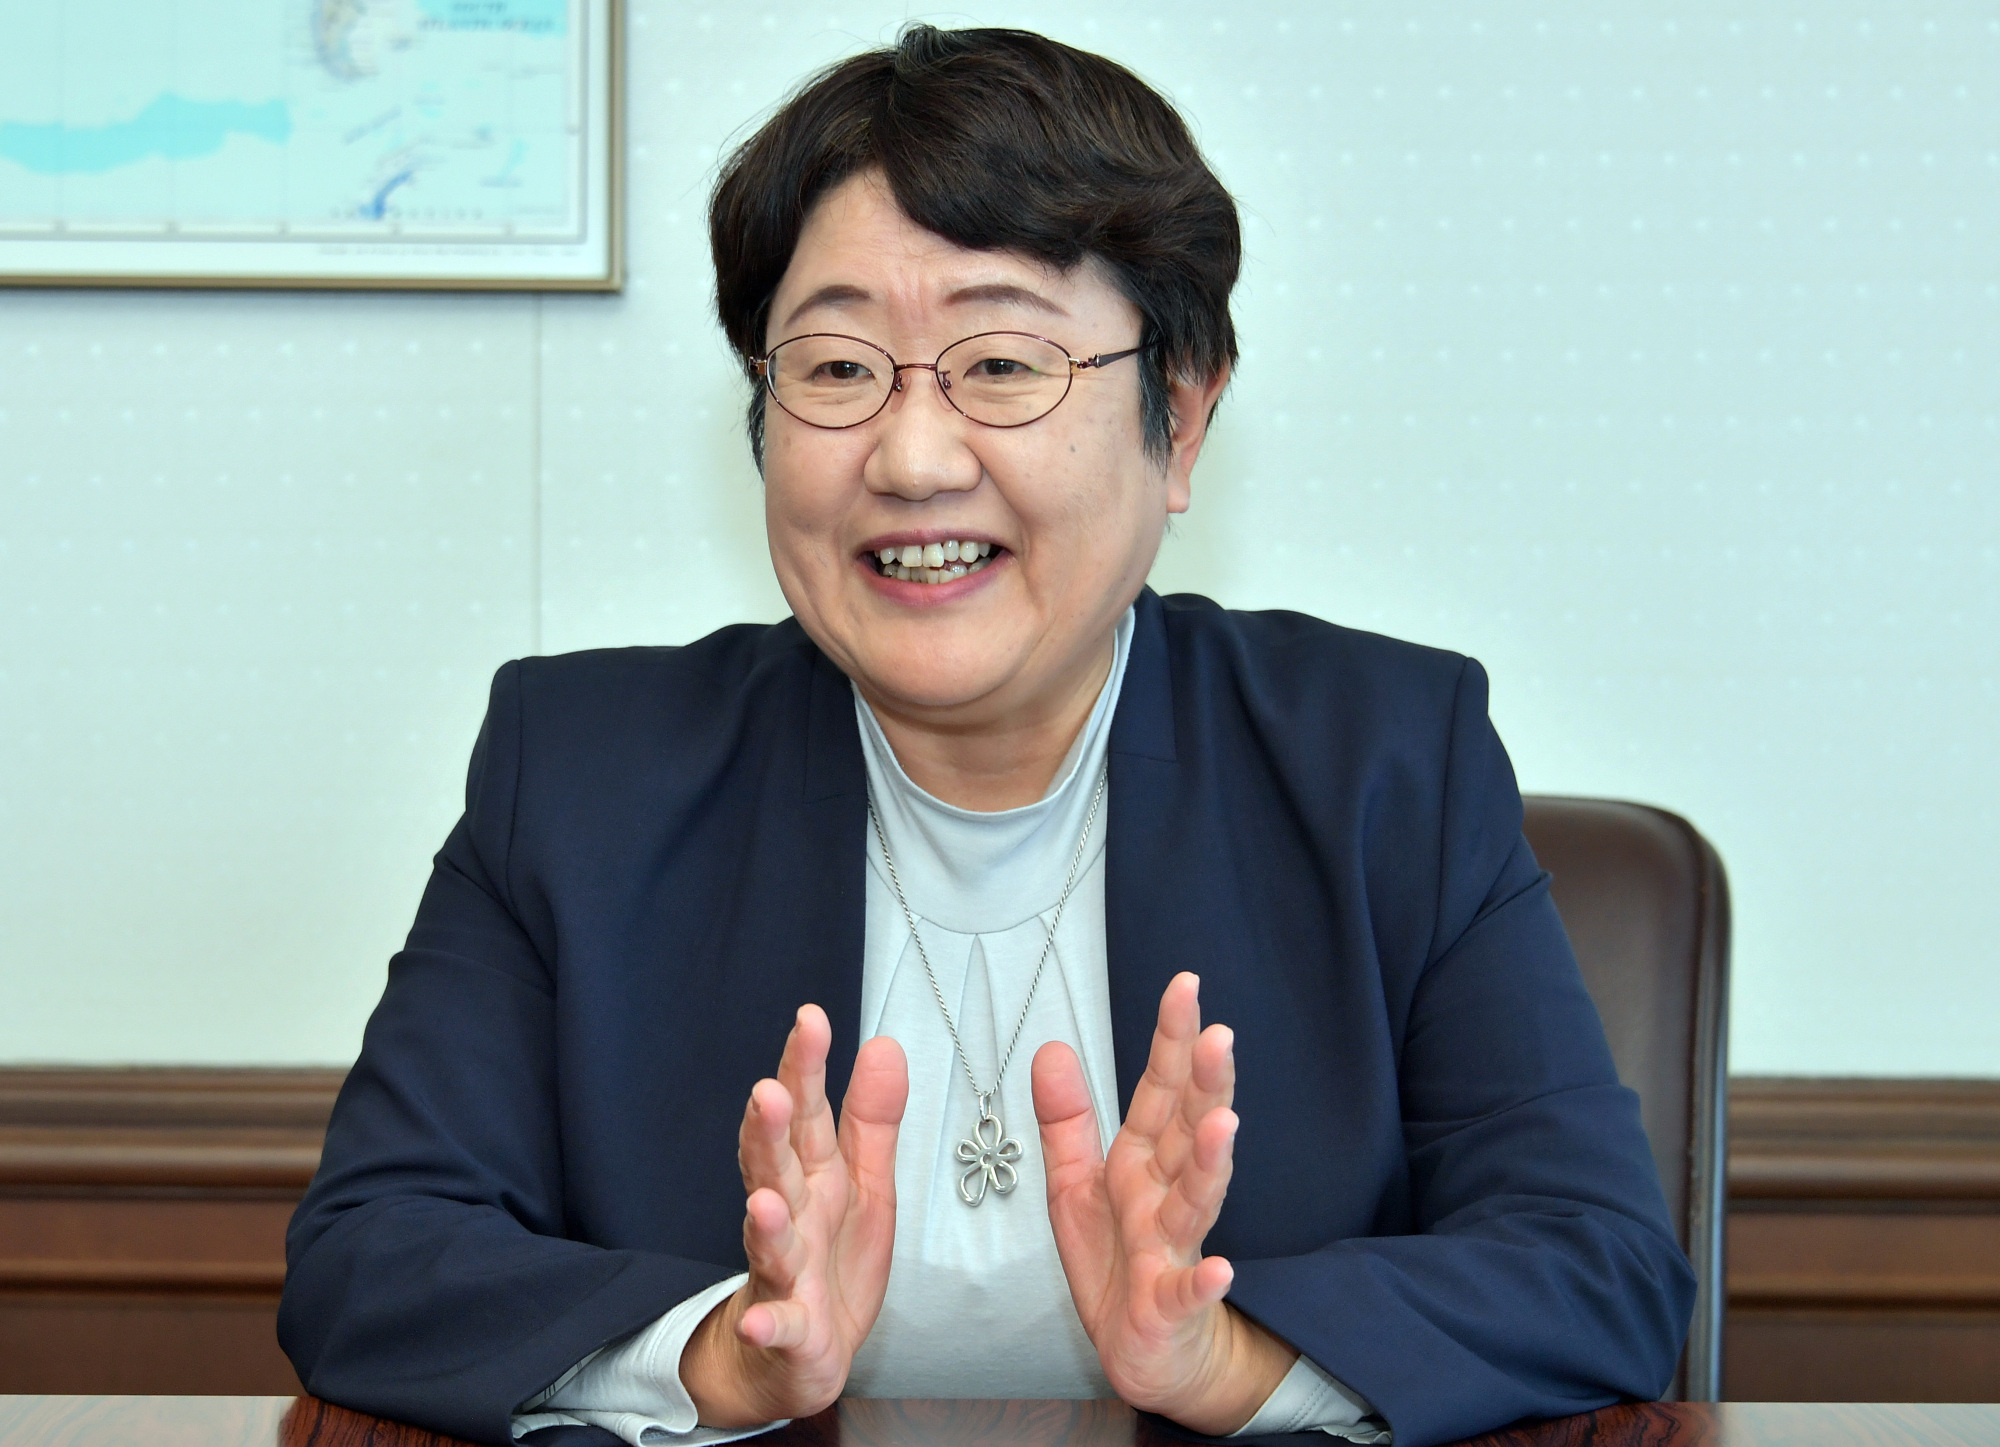 Shoko Sasaki, commissioner of the Immigration Services Agency, is interviewed at the Justice Ministry on Dec. 20. | YOSHIAKI MIURA